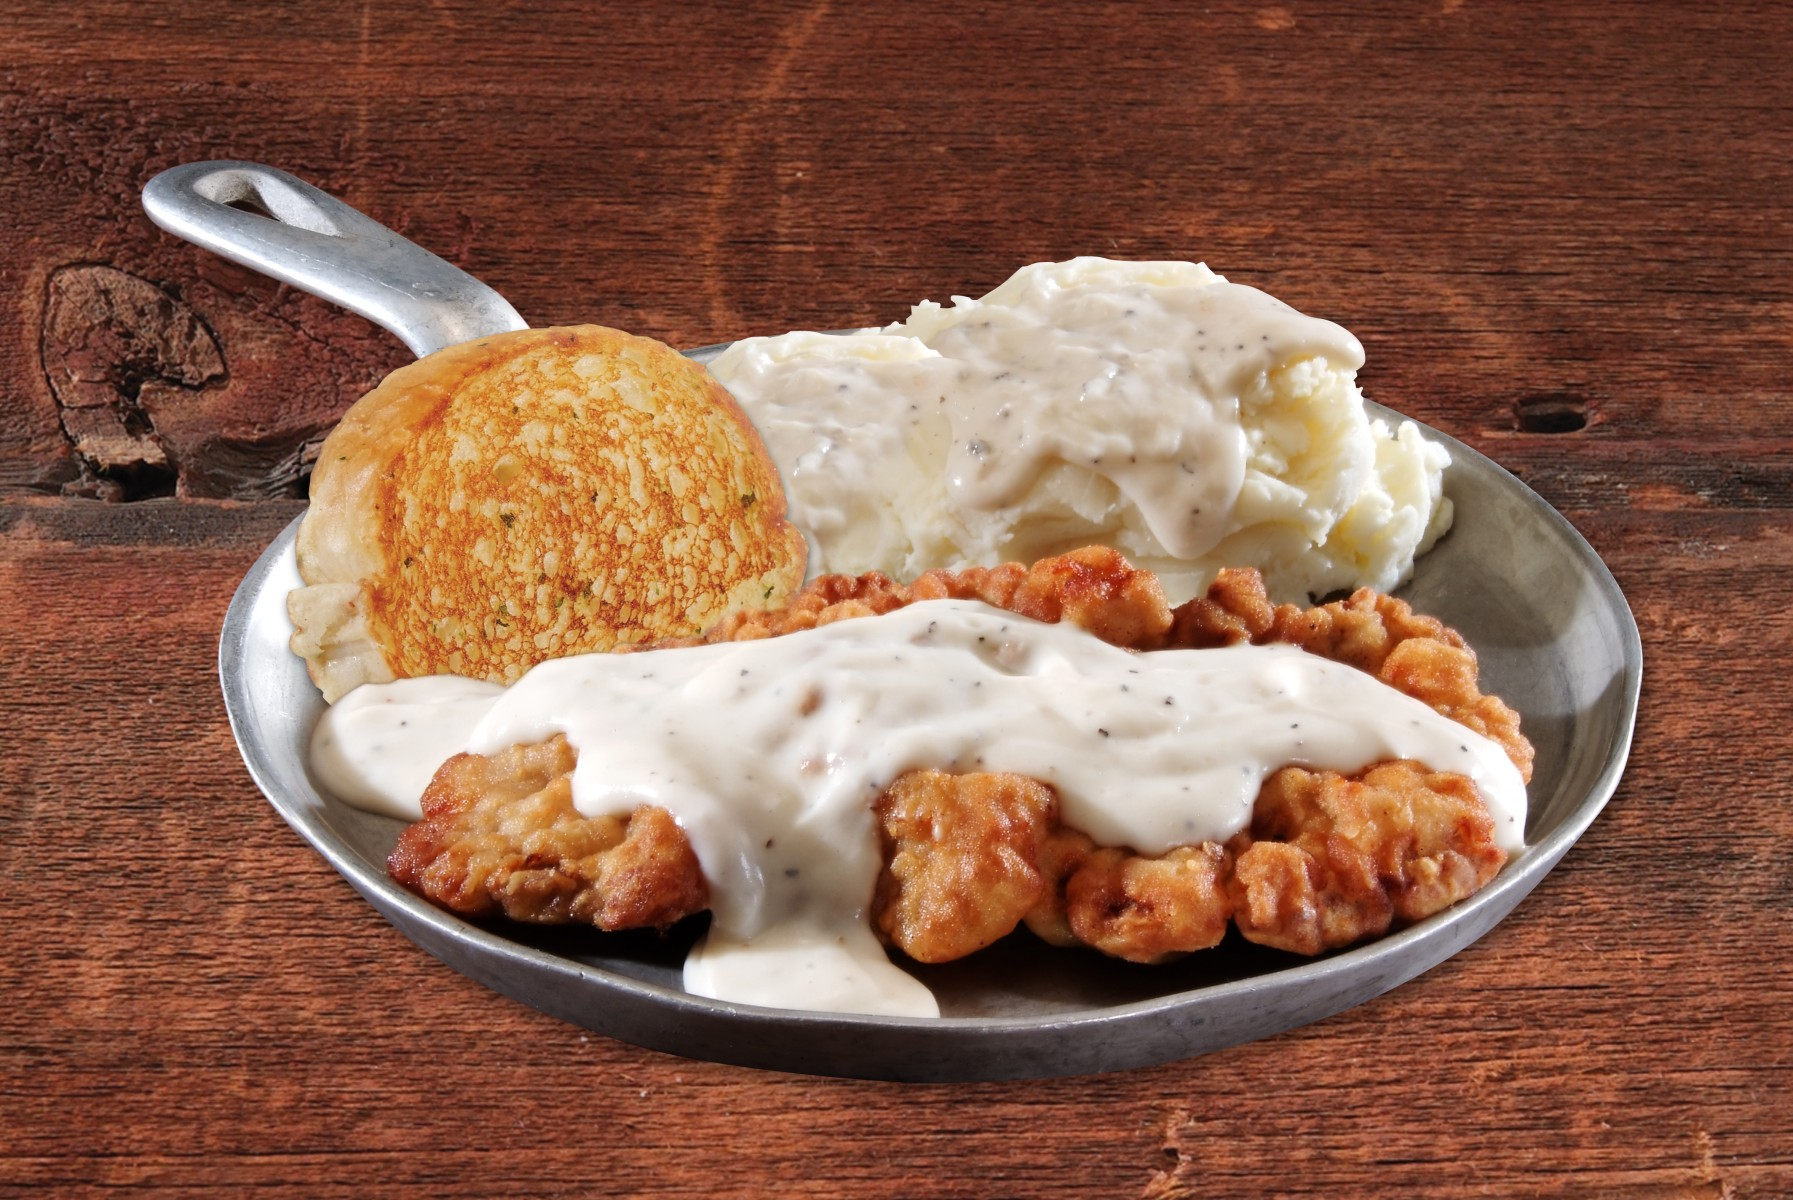 Petro Iron Skillet Restaurants Keep Tradition Alive By Celebrating Annual Chicken Fried Steak Day